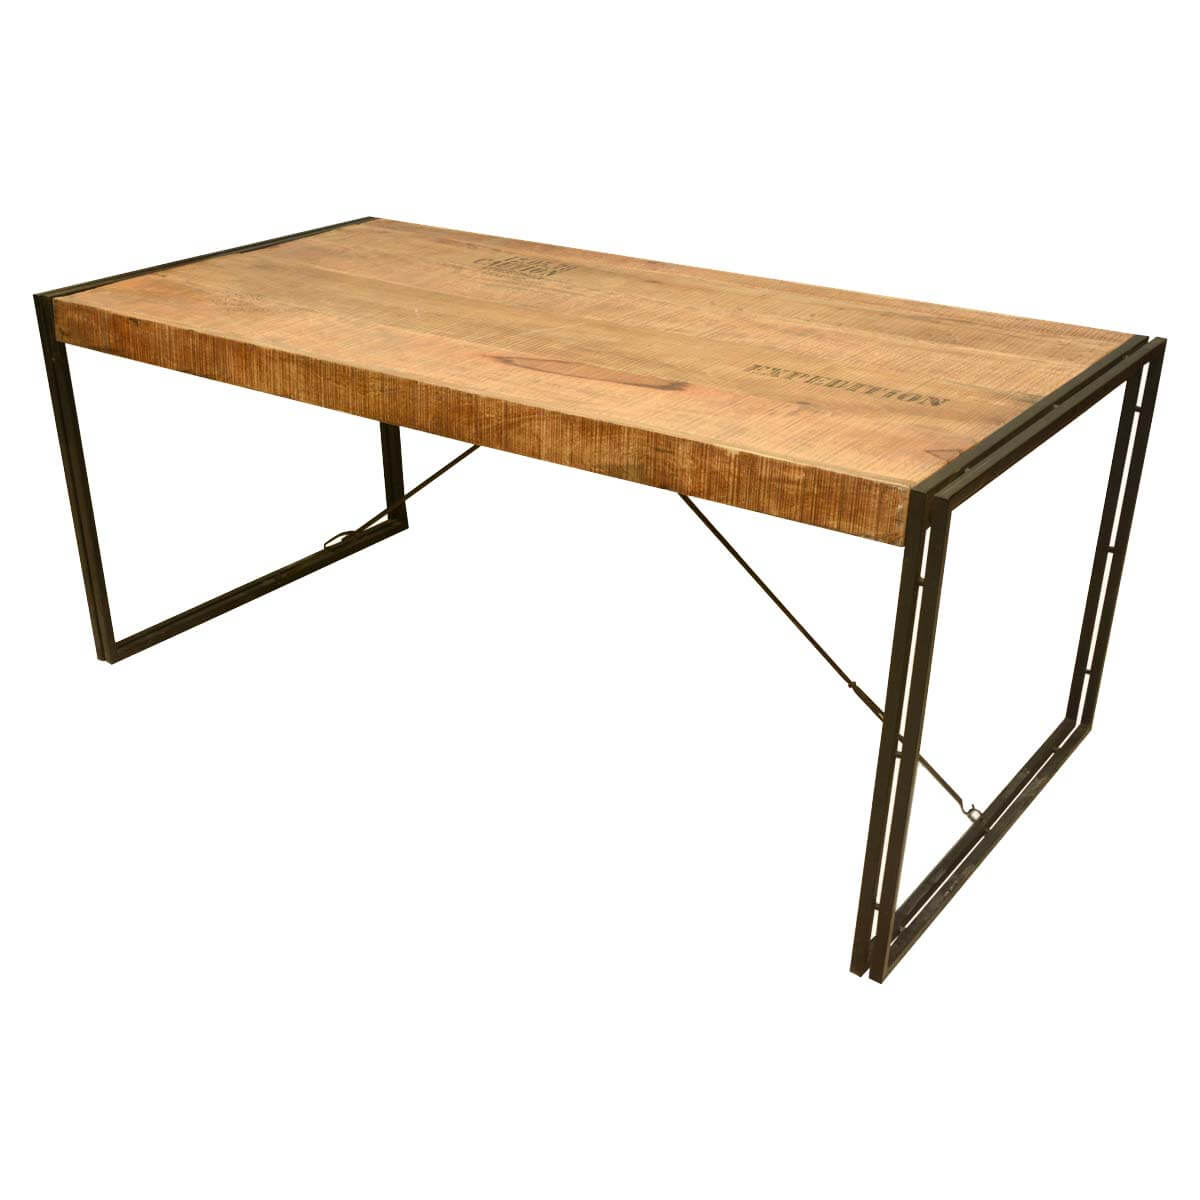 large rustic industrial style mango wood and iron dining table. Black Bedroom Furniture Sets. Home Design Ideas